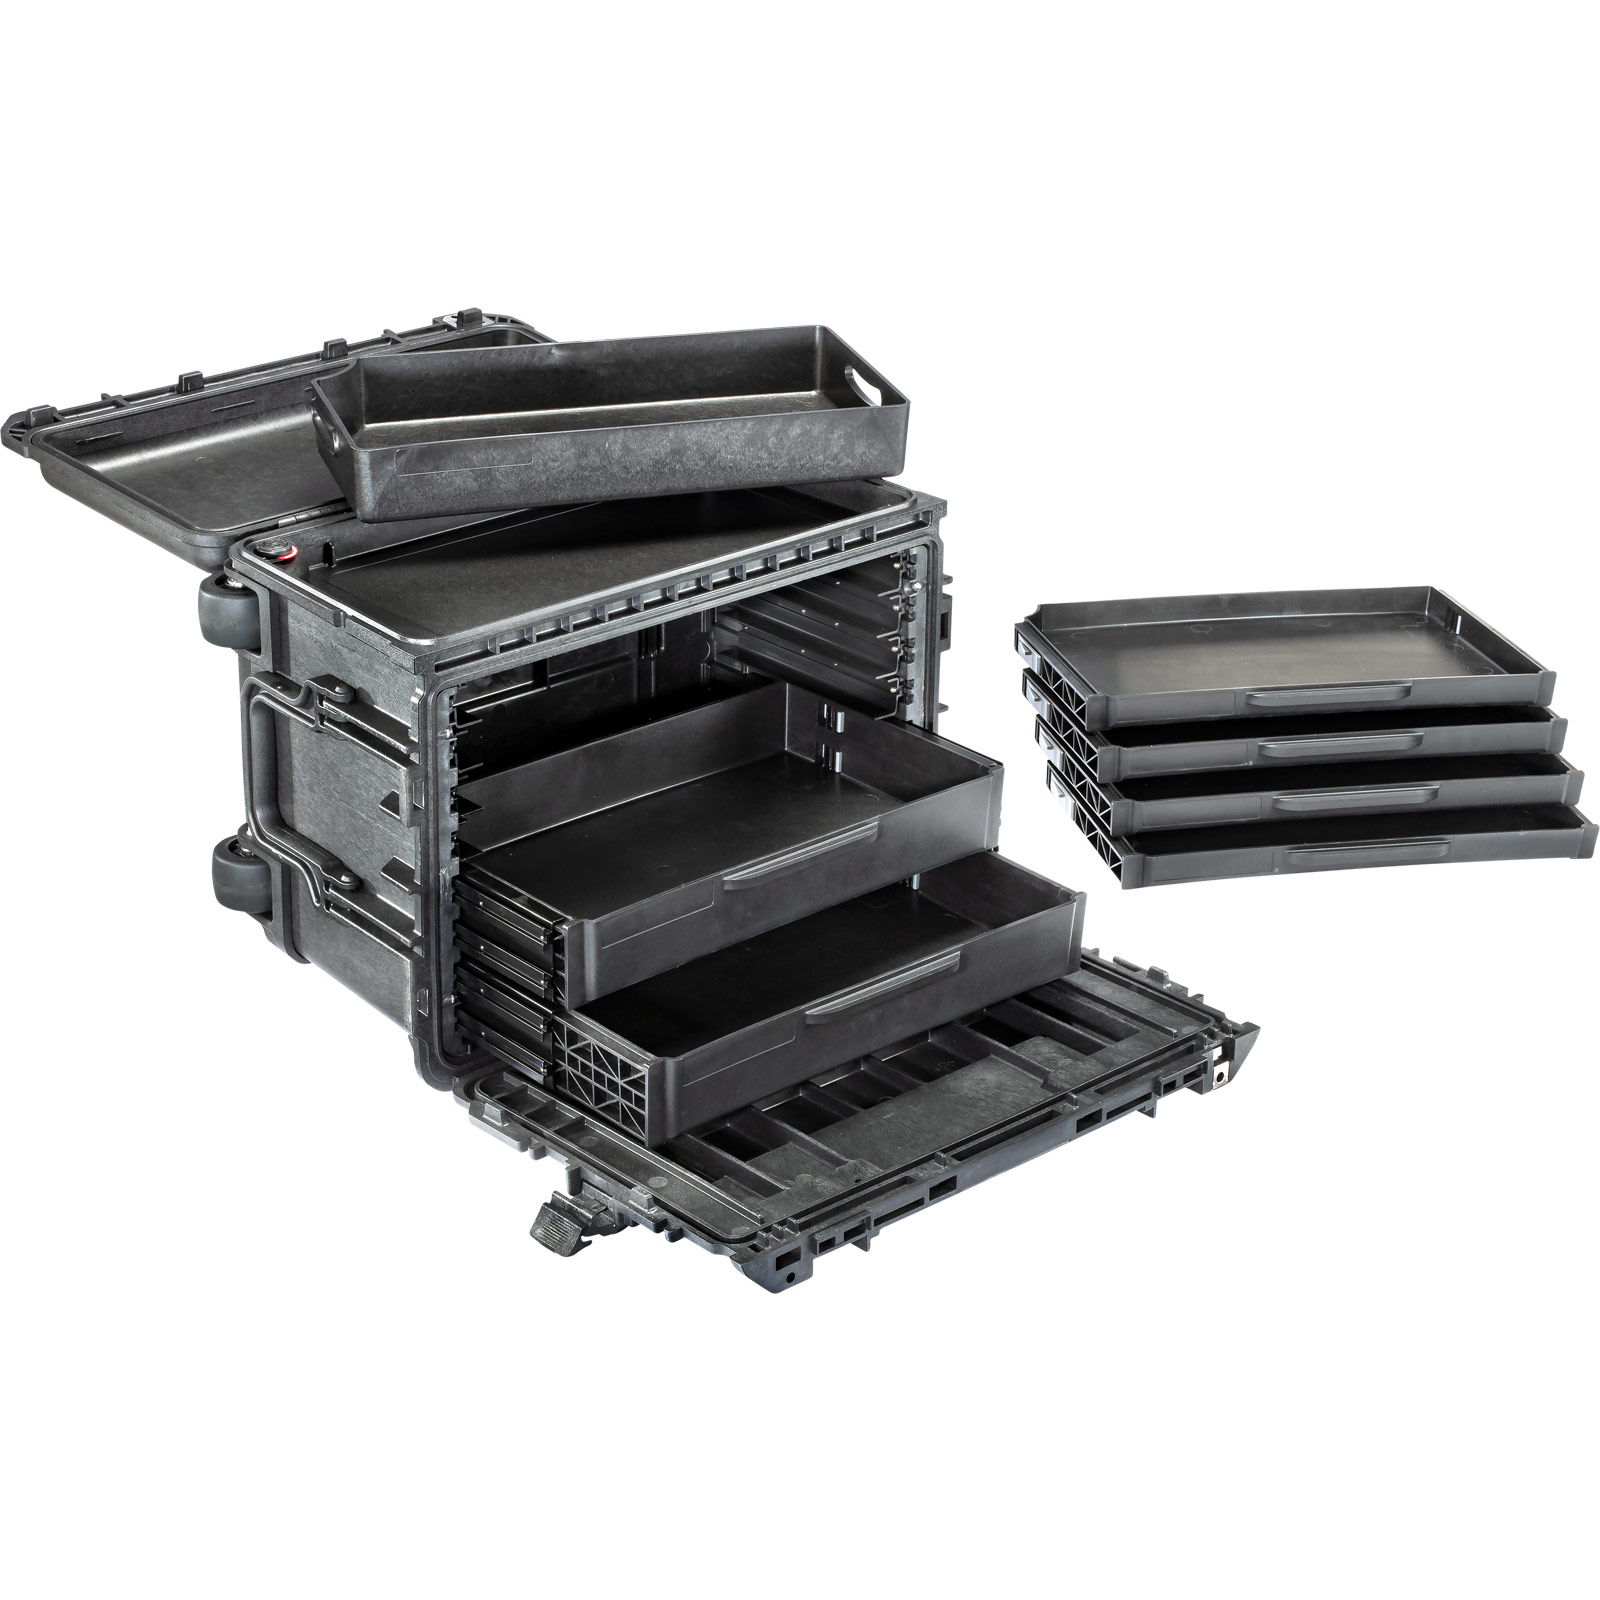 pelican 0450 heavy duty tool chest